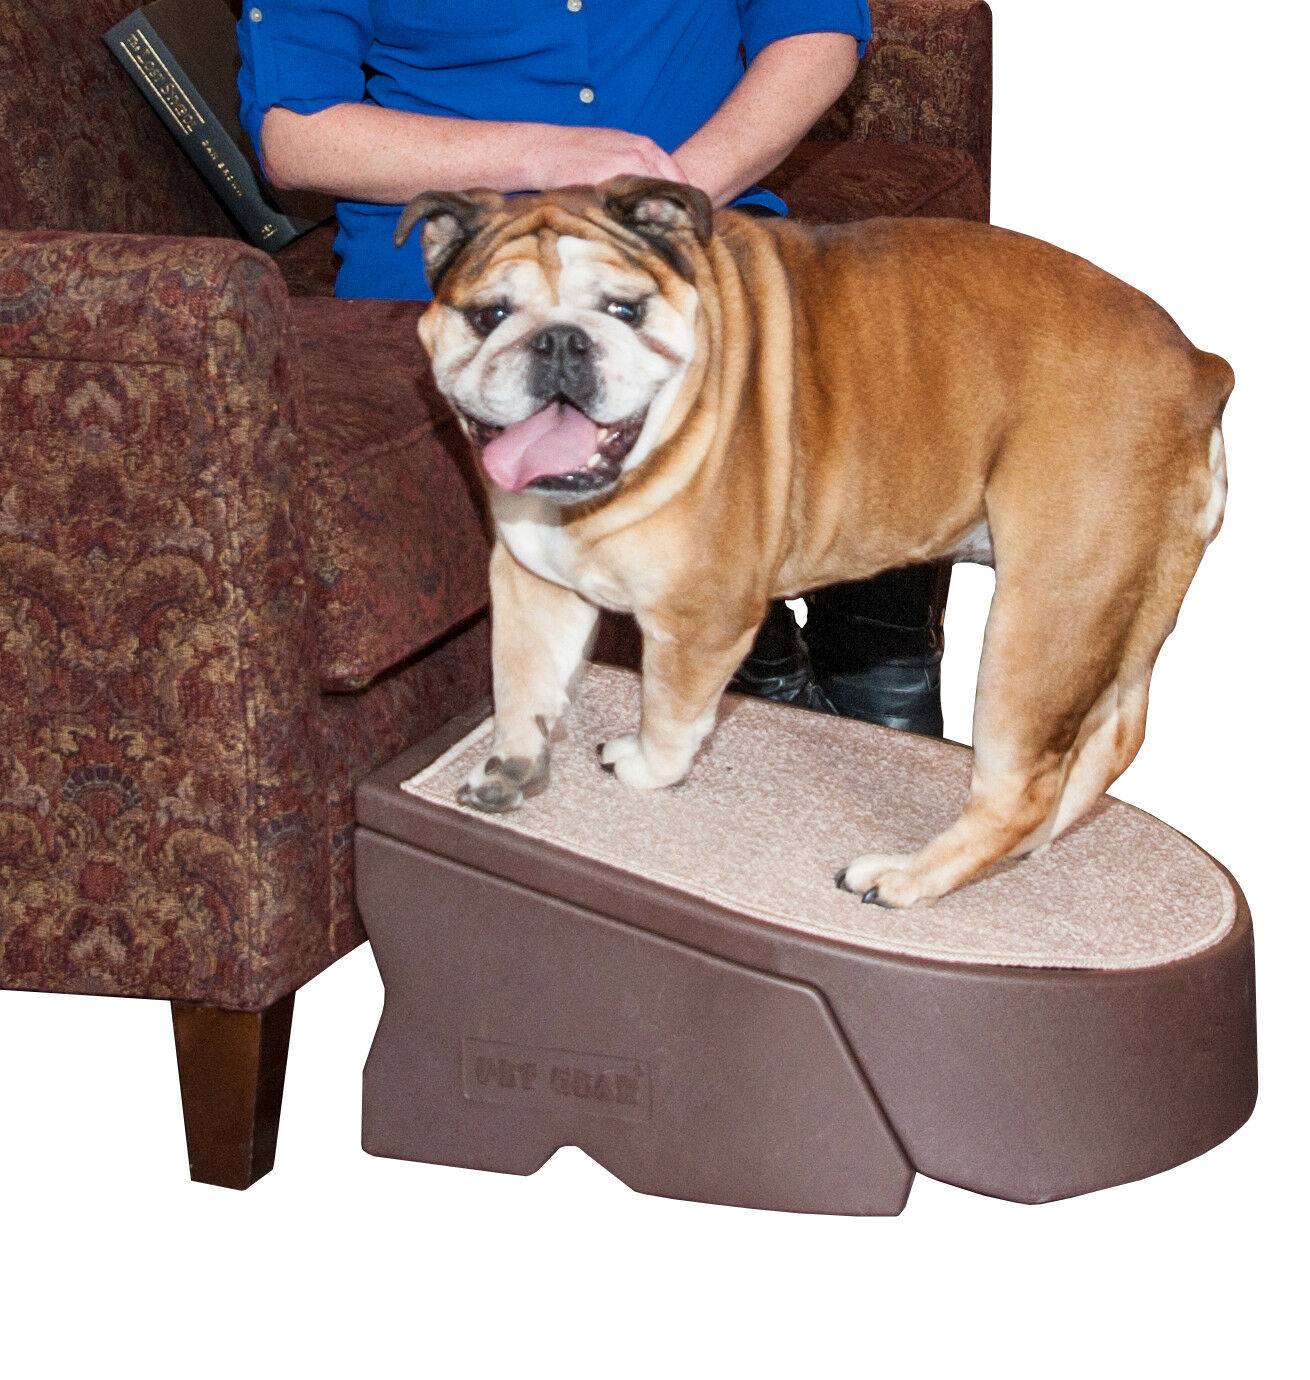 Pet Gear Gear Gear One Step Stair Ramp for Cats and Dogs PG9700CH Indoor Outdoor NEW cbbc0e